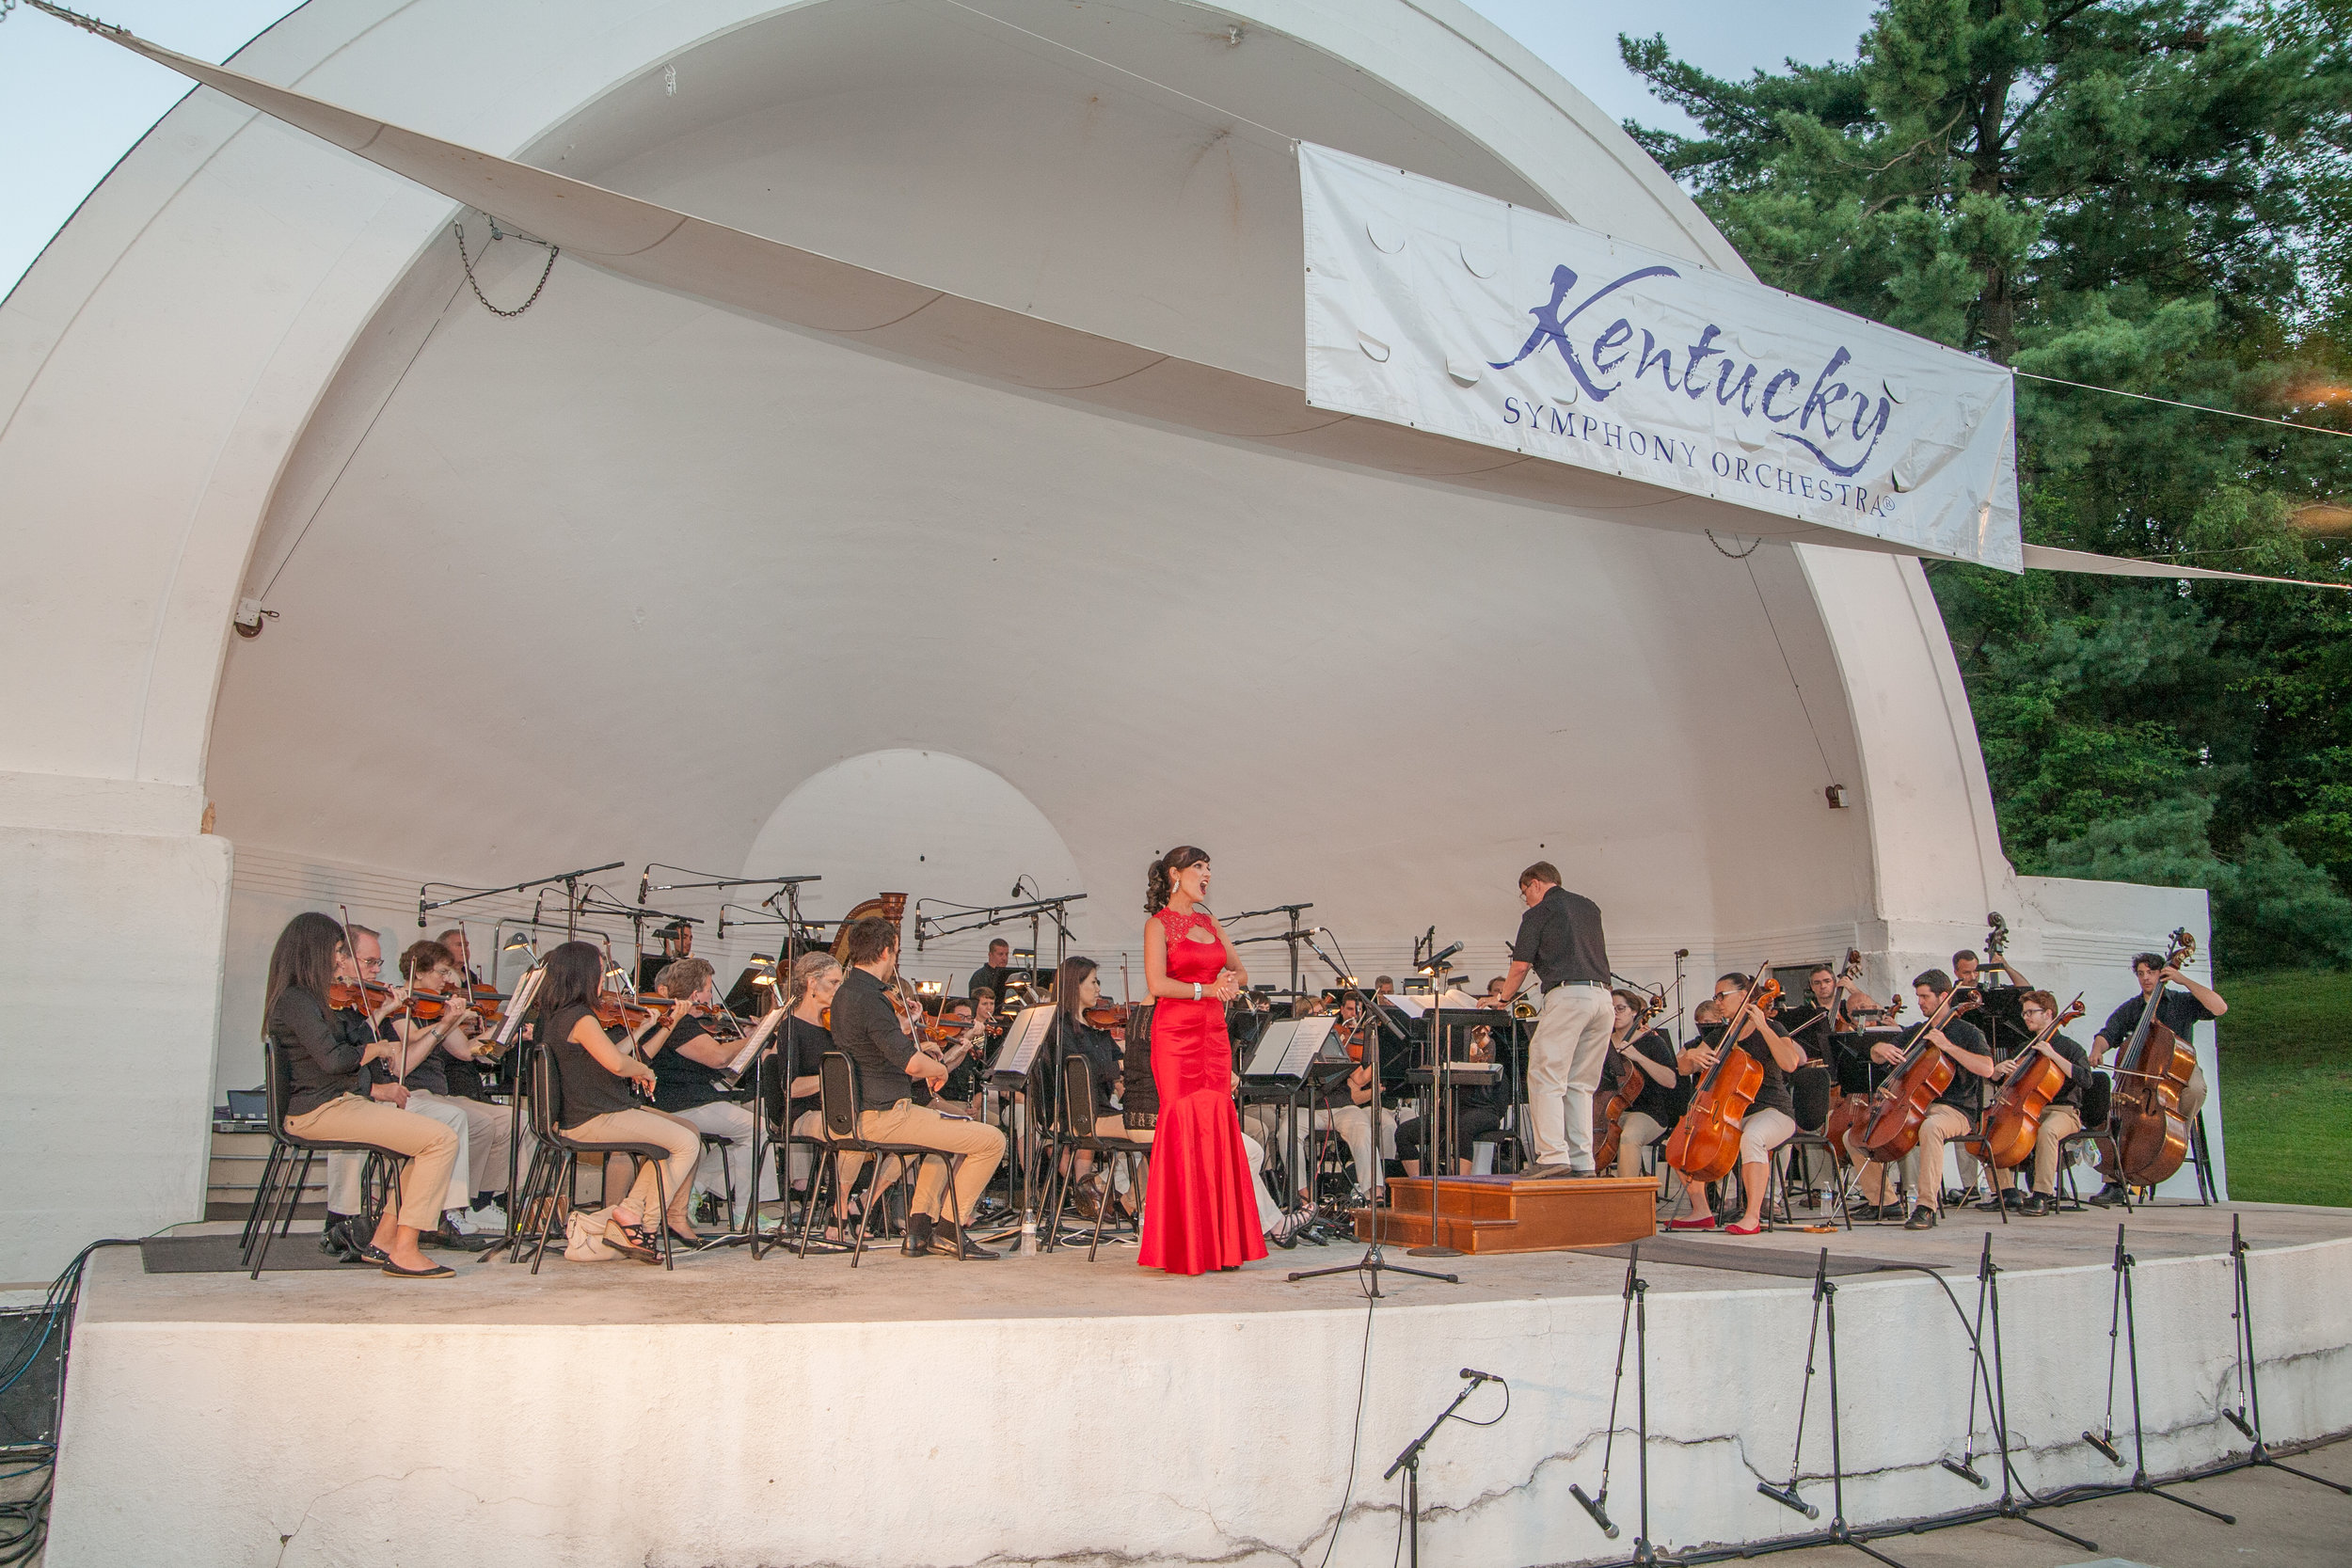 Straussing out with the Kentucky Symphony Orchestra